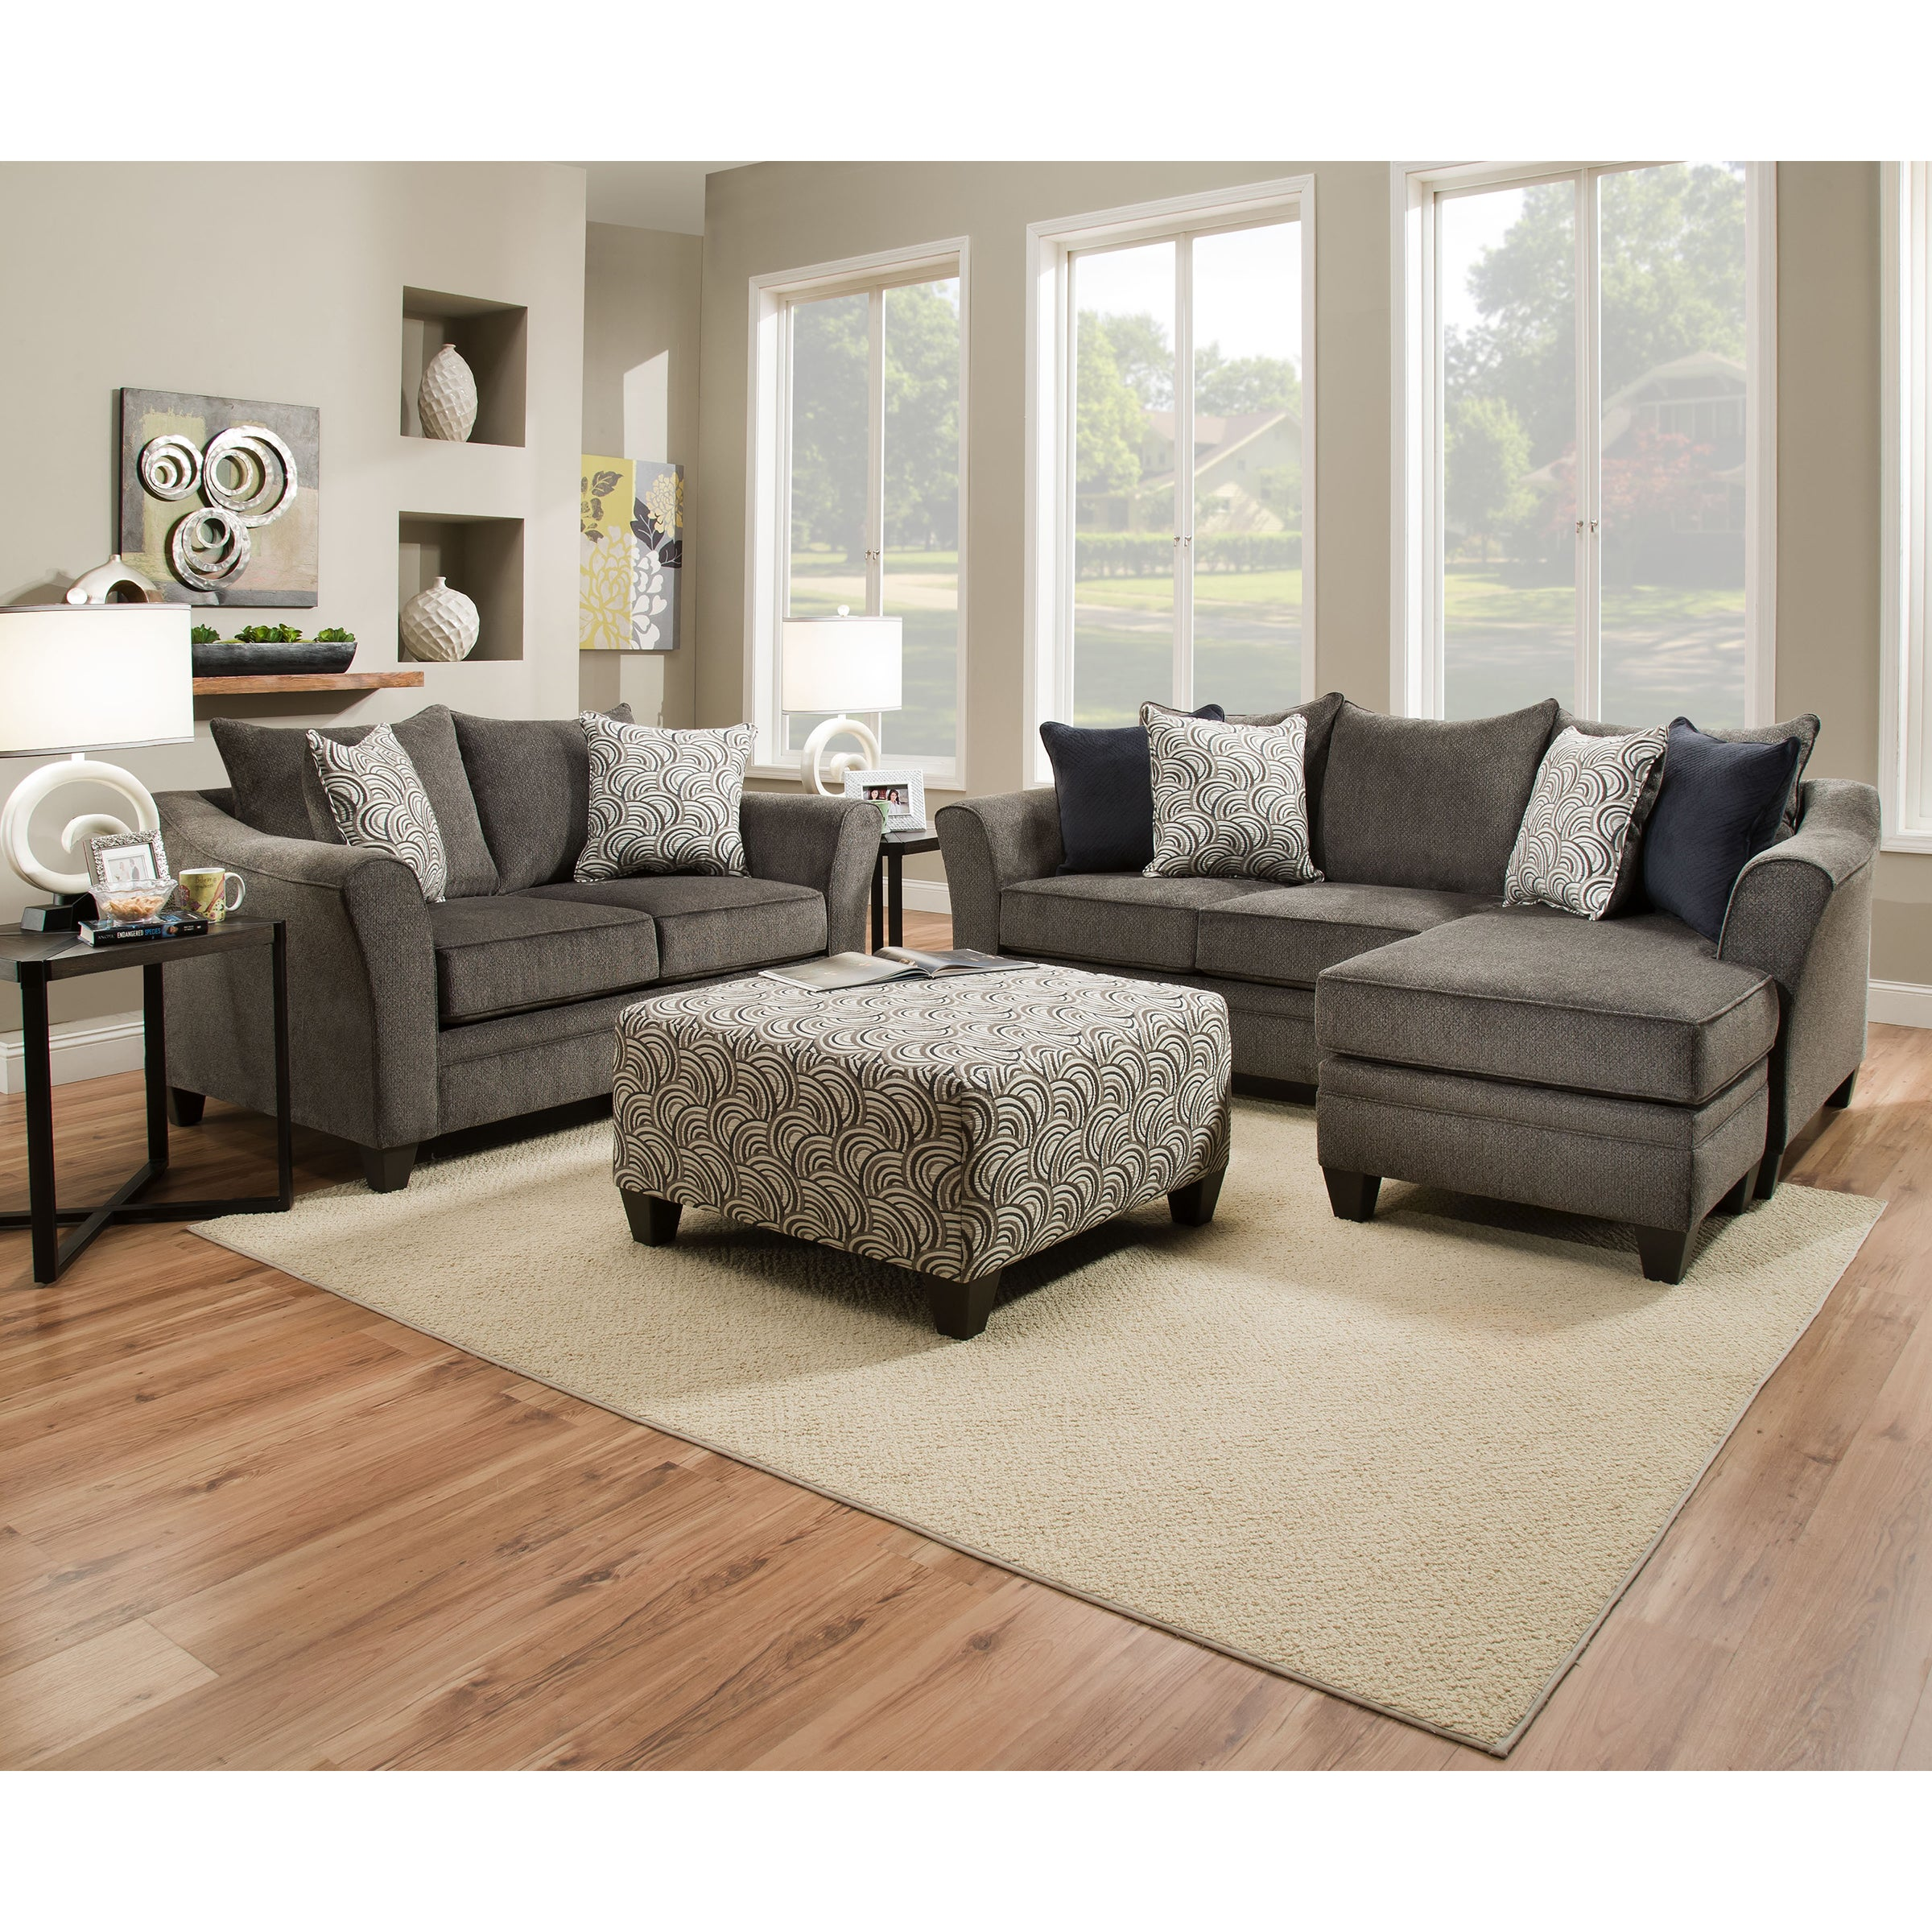 Simmons Upholstery Albany Pewter Sofa Chaise (2 Piece Sof...